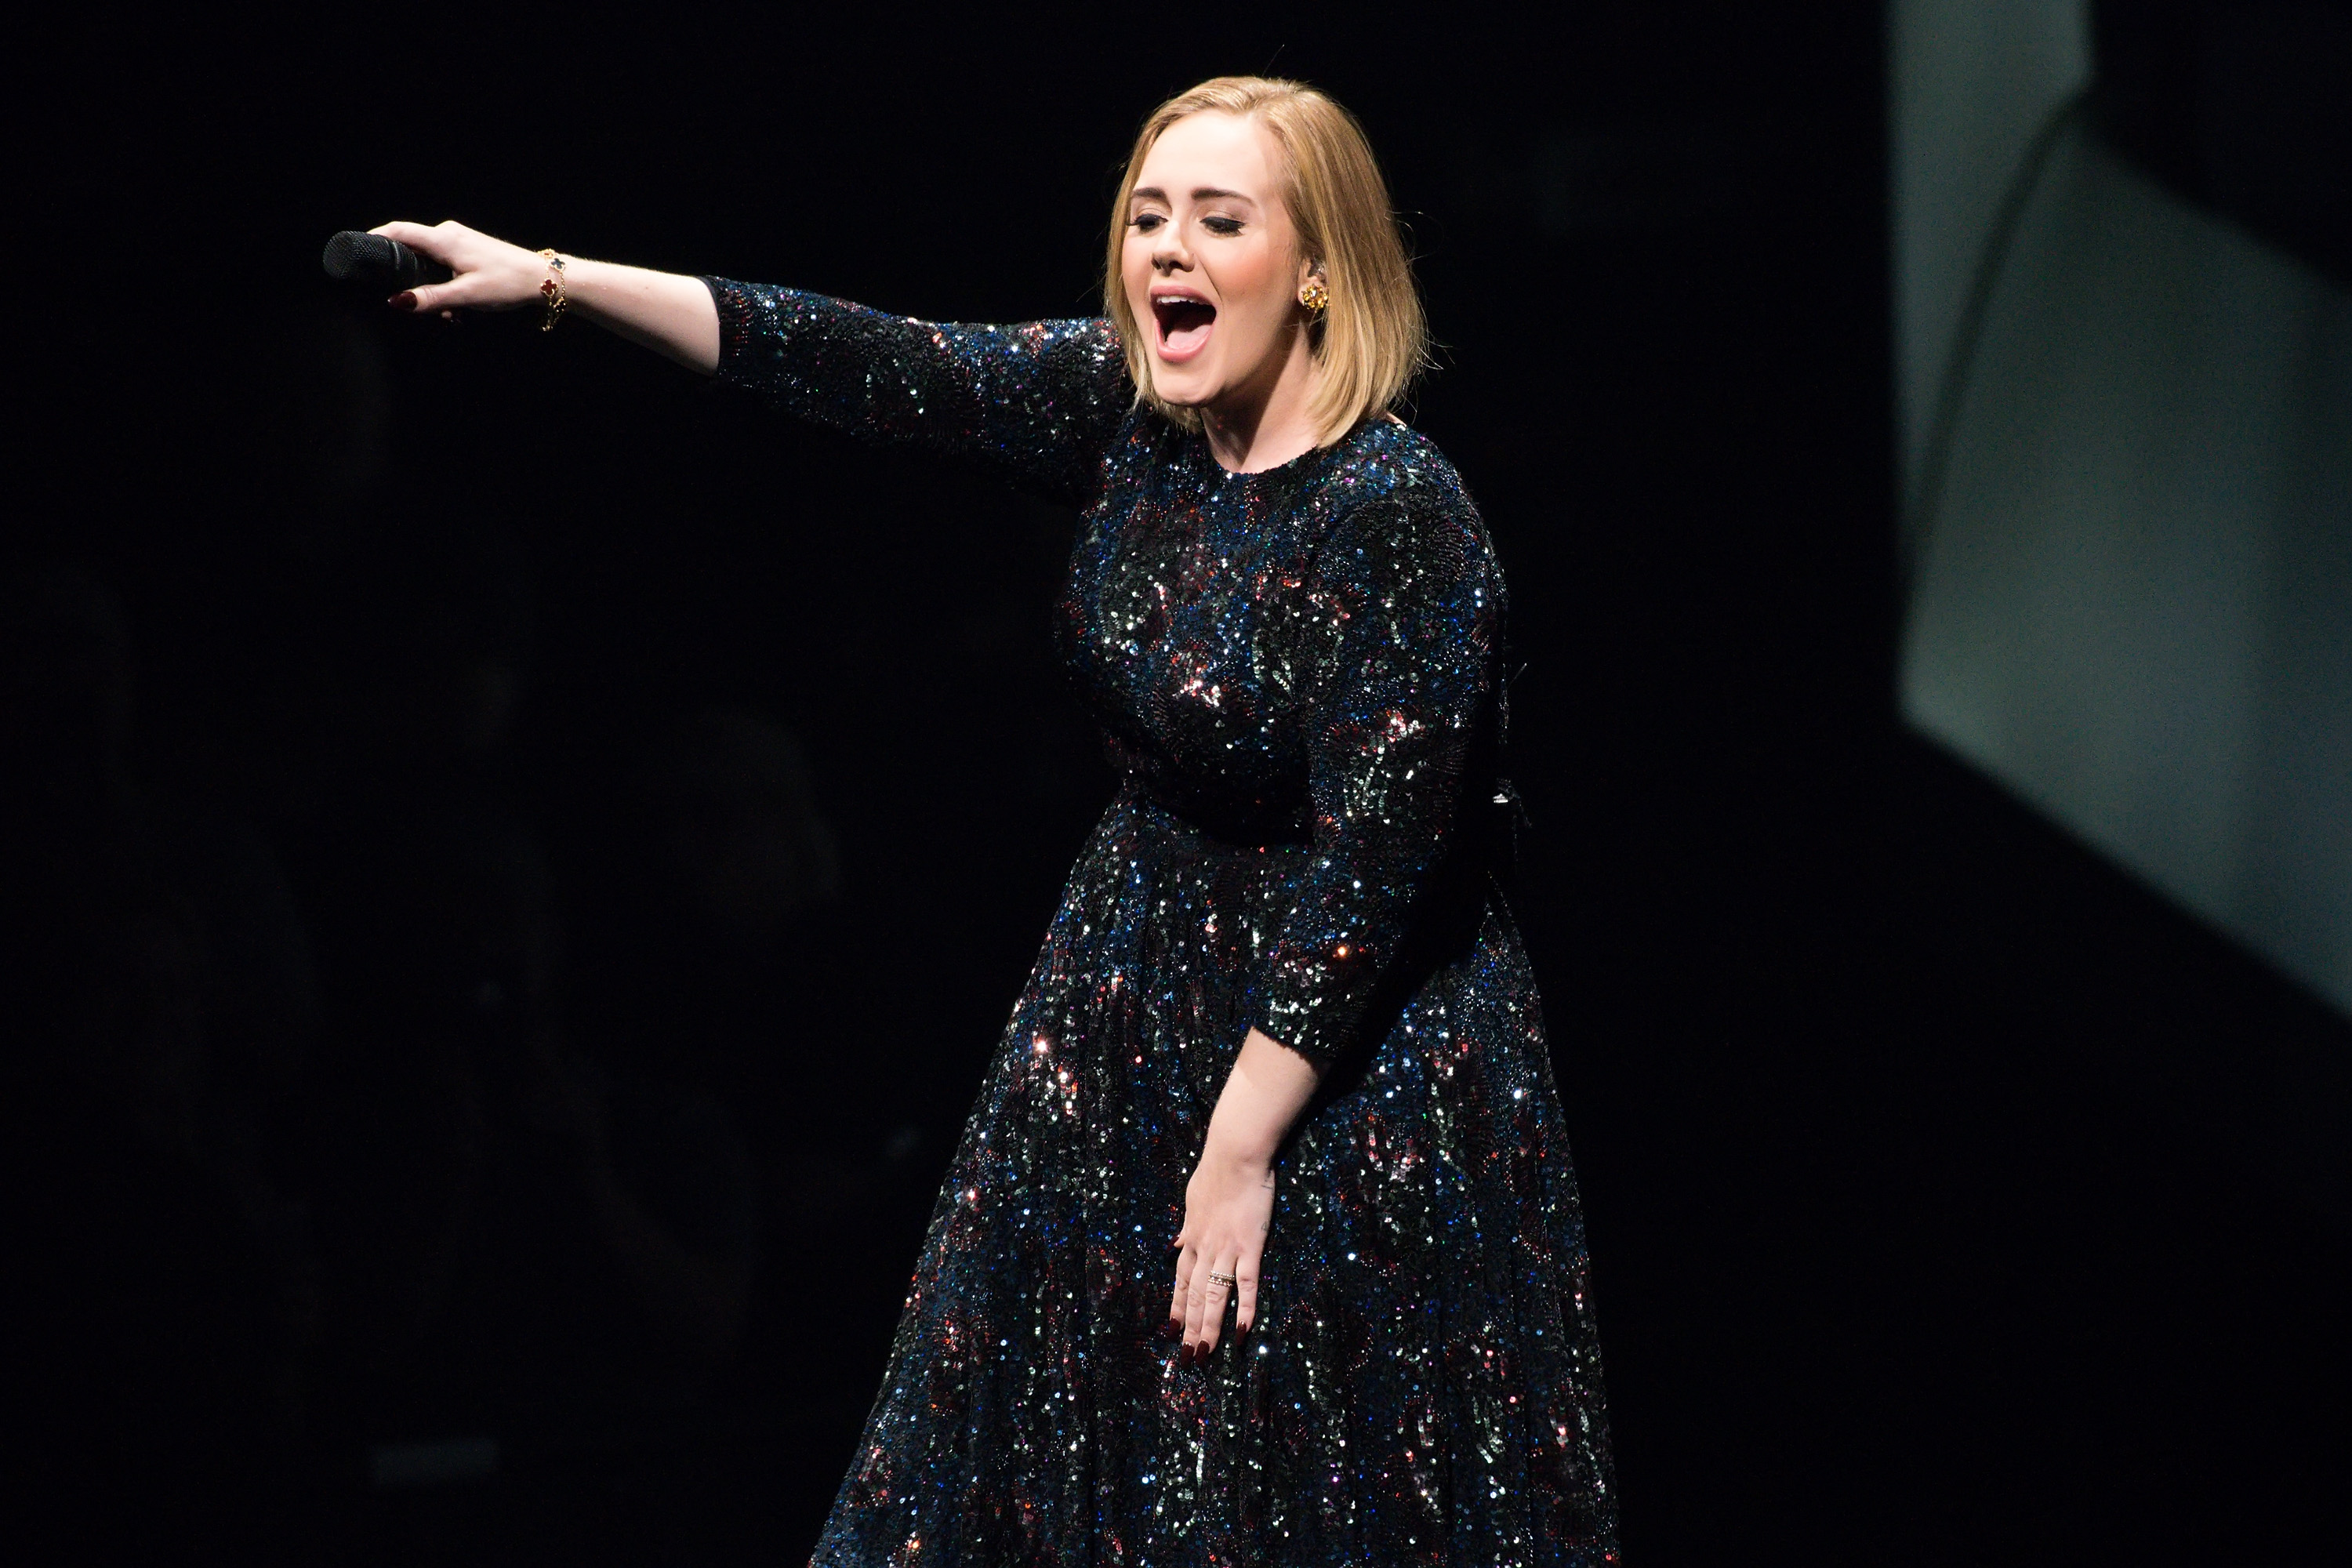 Adele performs at United Center on July 10, 2016 in Chicago, Illinois.